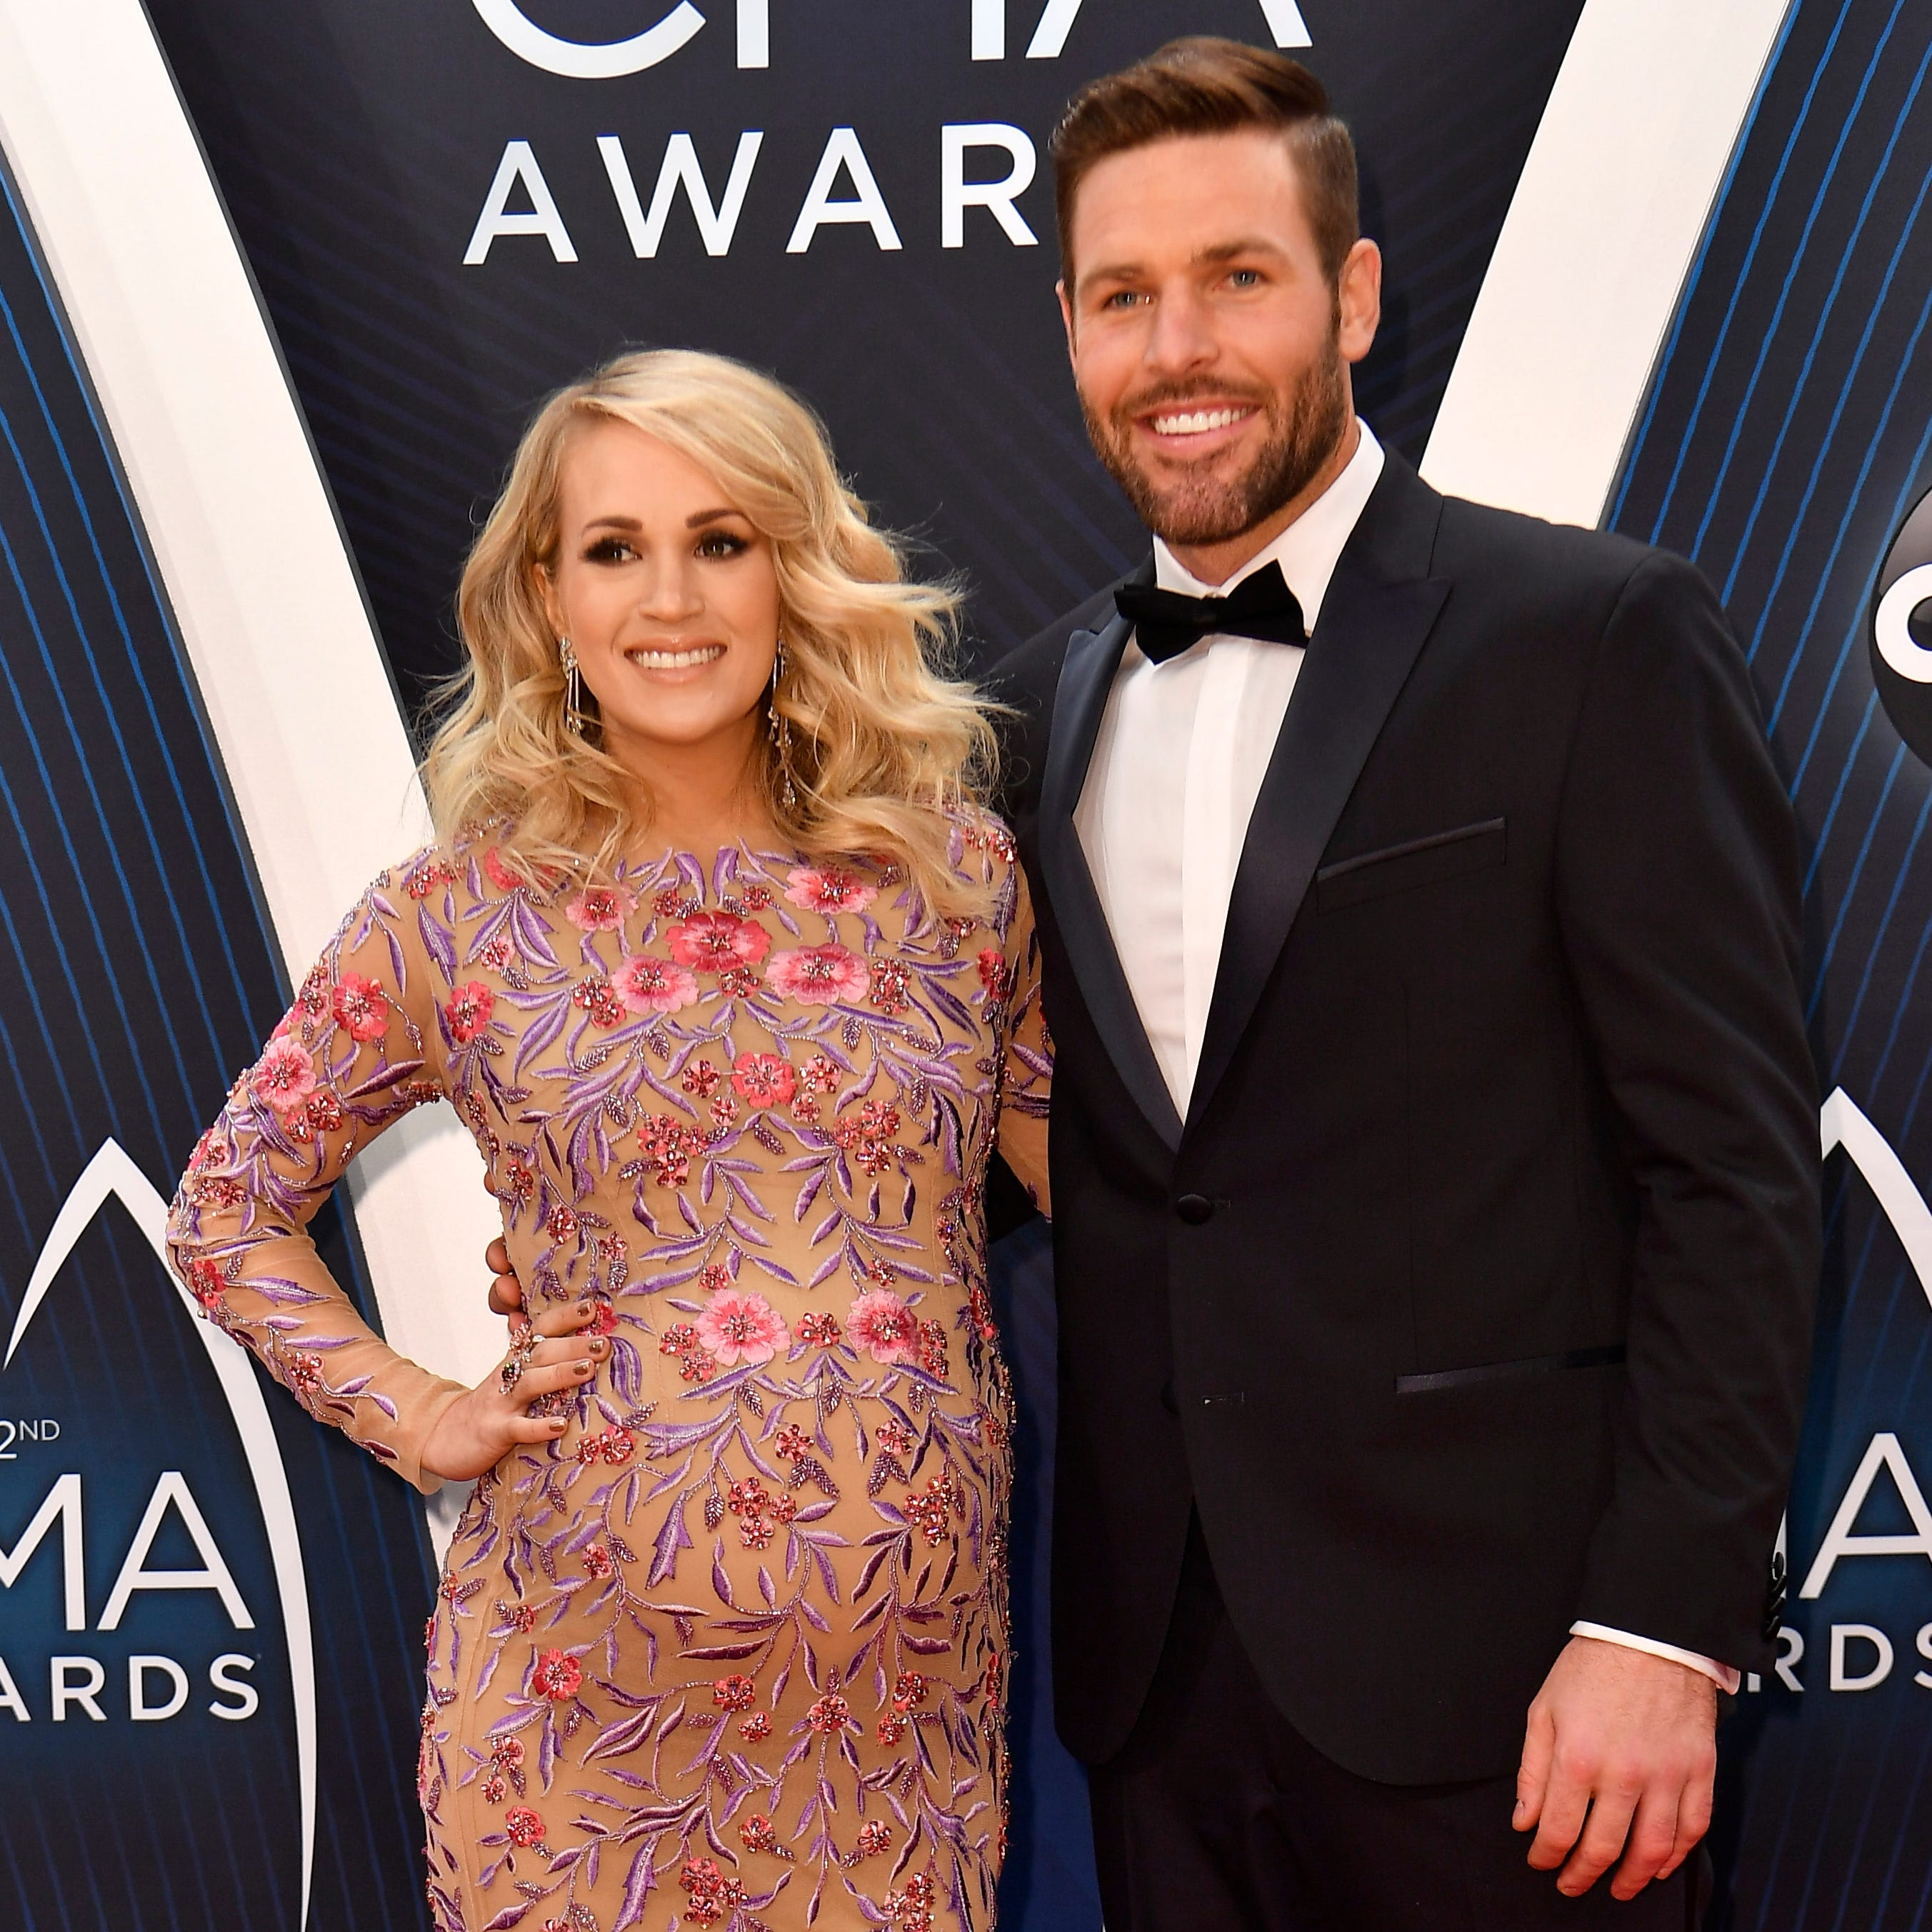 Carrie Underwood and husband Mike Fisher on the red carpet before the 52nd Annual CMA Awards at Bridgestone Arena Wednesday, Nov. 14, 2018, in Nashville, Tenn.